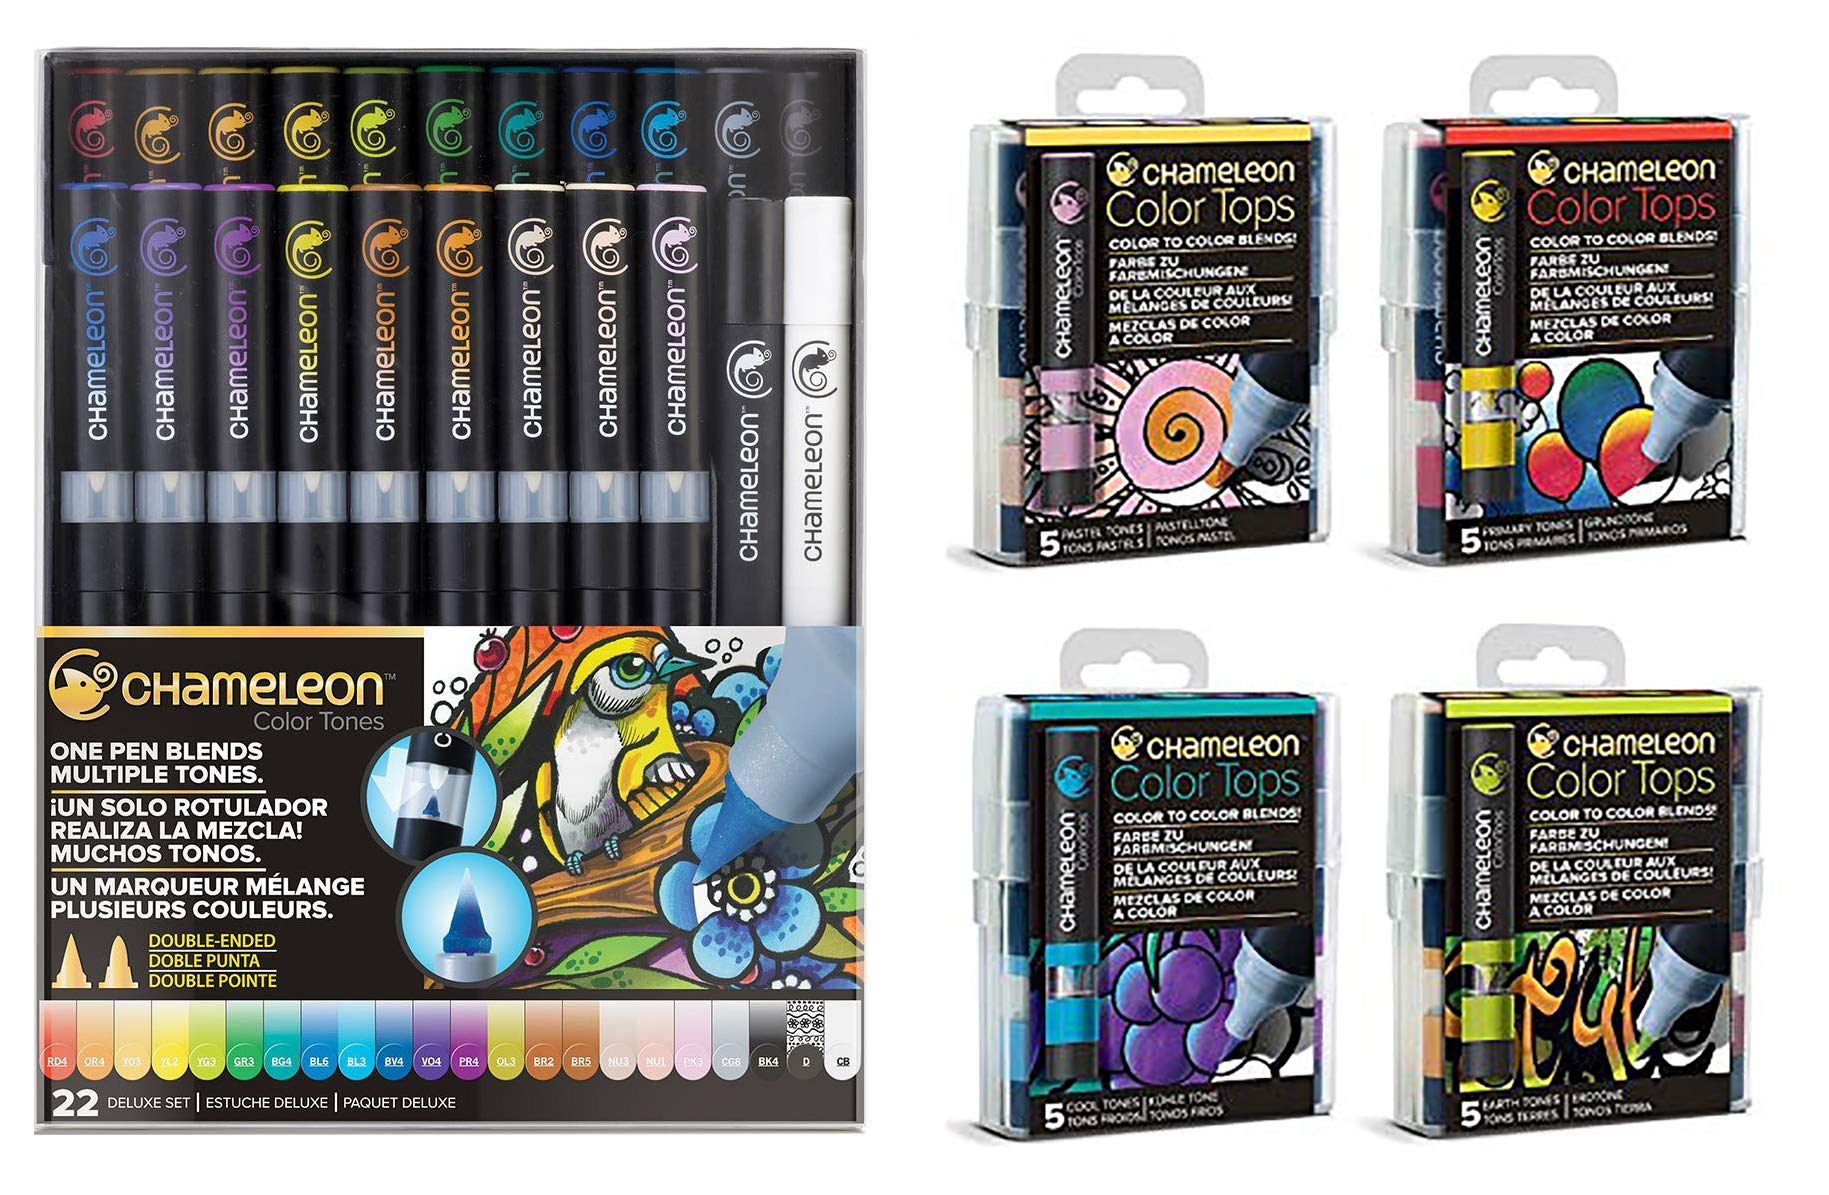 Chameleon 22 Piece Marker Set and 4 Packs of 5 Color Tops (1 Each Pastel, Primary, Cool and Earth Tones) (Bundle 5 Items)